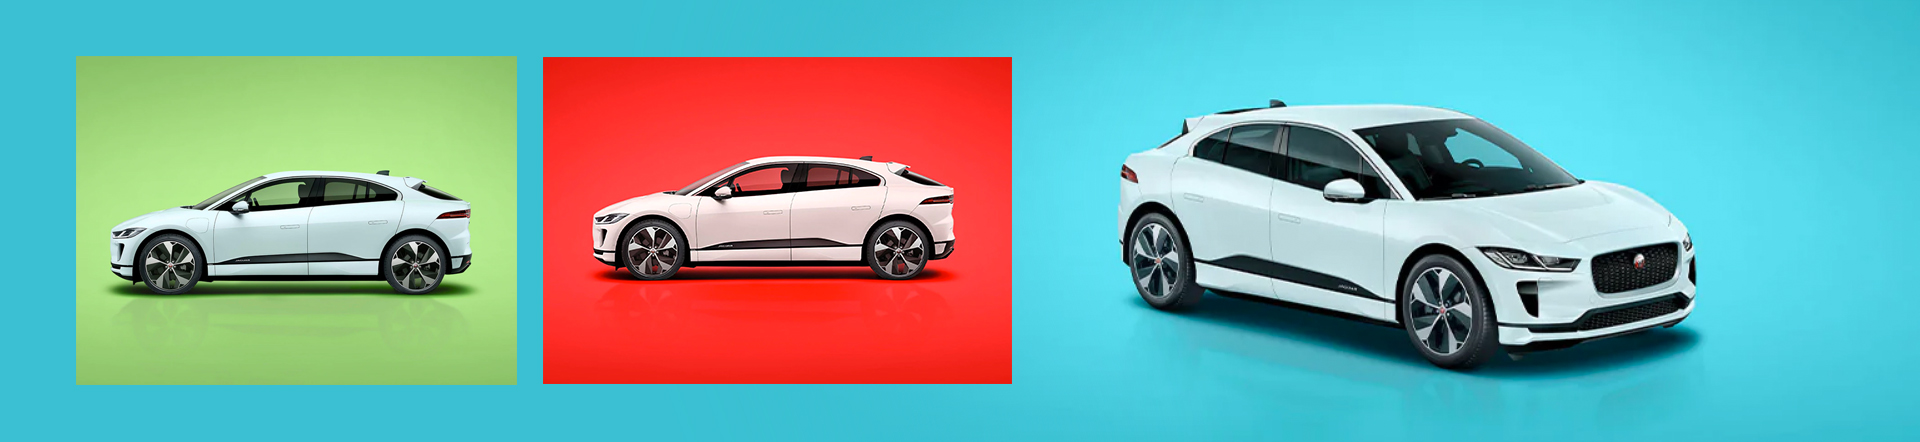 Jaguar I-Pace Sonderedition Austria Edition header